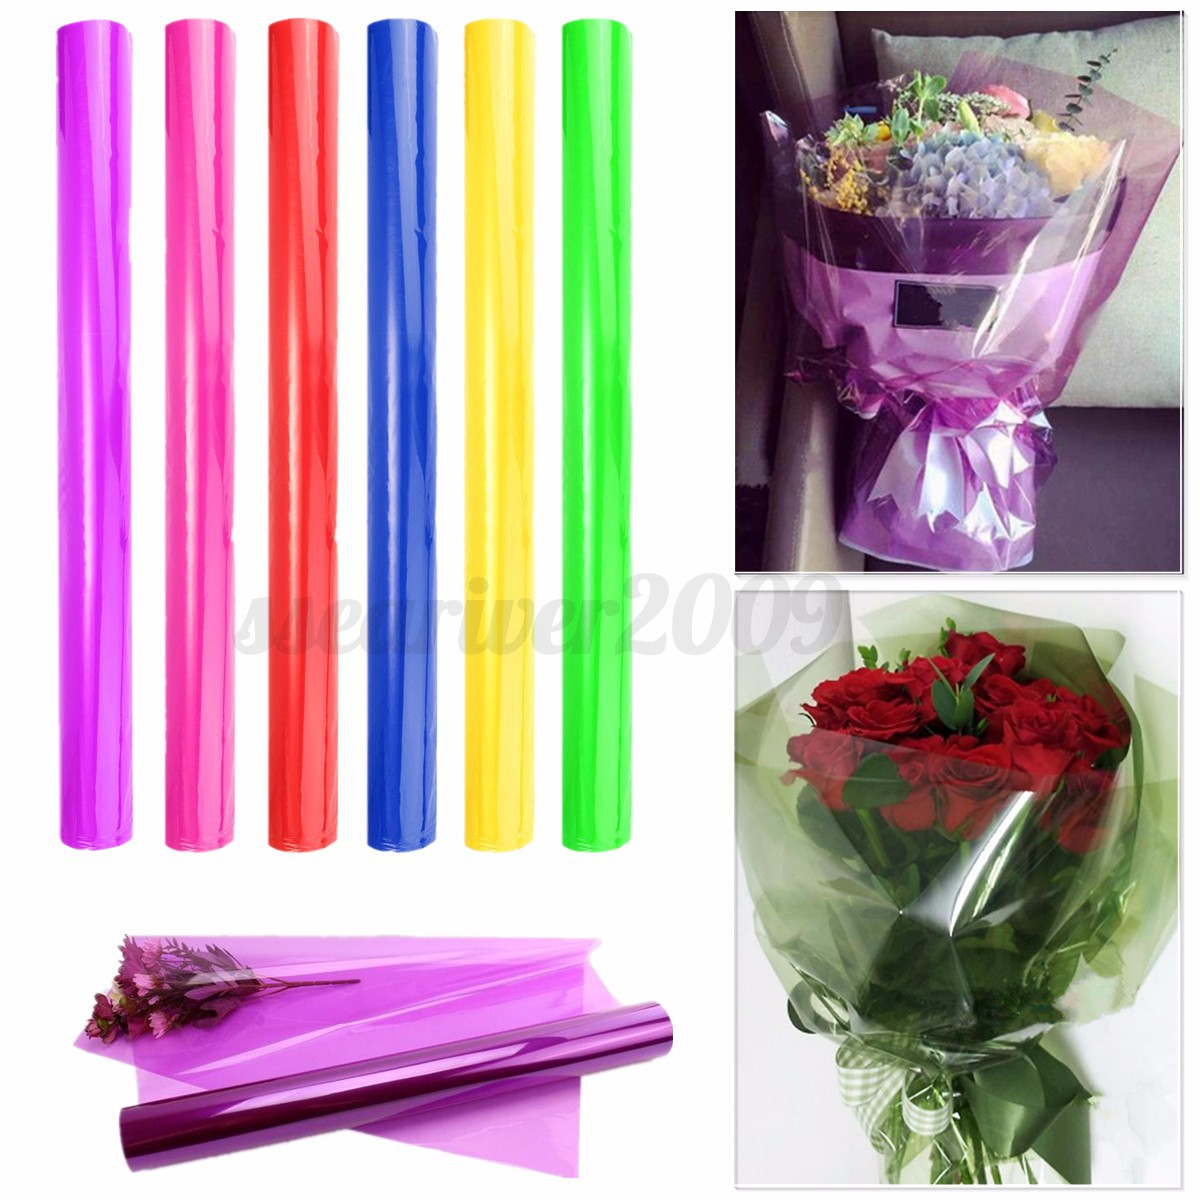 cellophane wrapping paper Create custom printed cellophane bags and gift wrap heat shrinkable packaging.